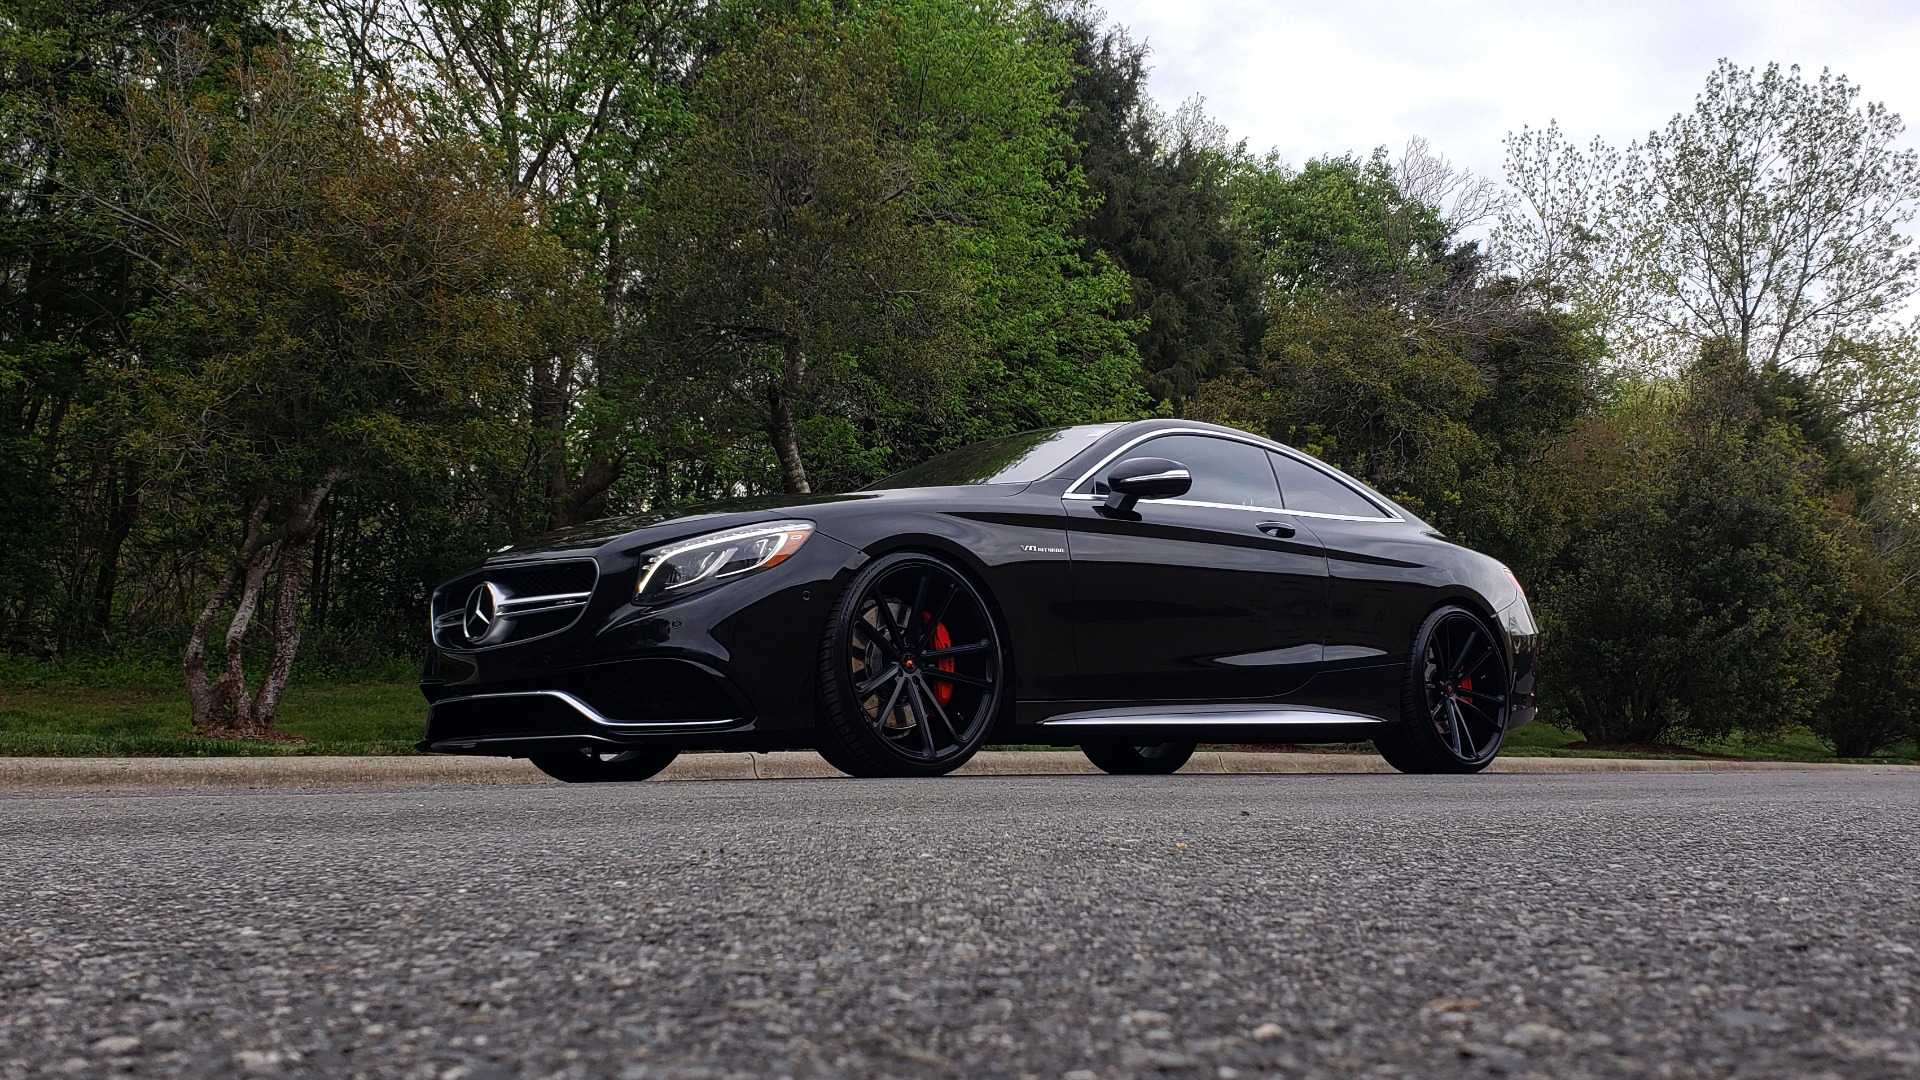 Used 2015 Mercedes-Benz S-CLASS S 63 AMG 4MATIC / DRVR ASST / NIGHT VIEW ASST PLUS / MAGIC SKY for sale Sold at Formula Imports in Charlotte NC 28227 2